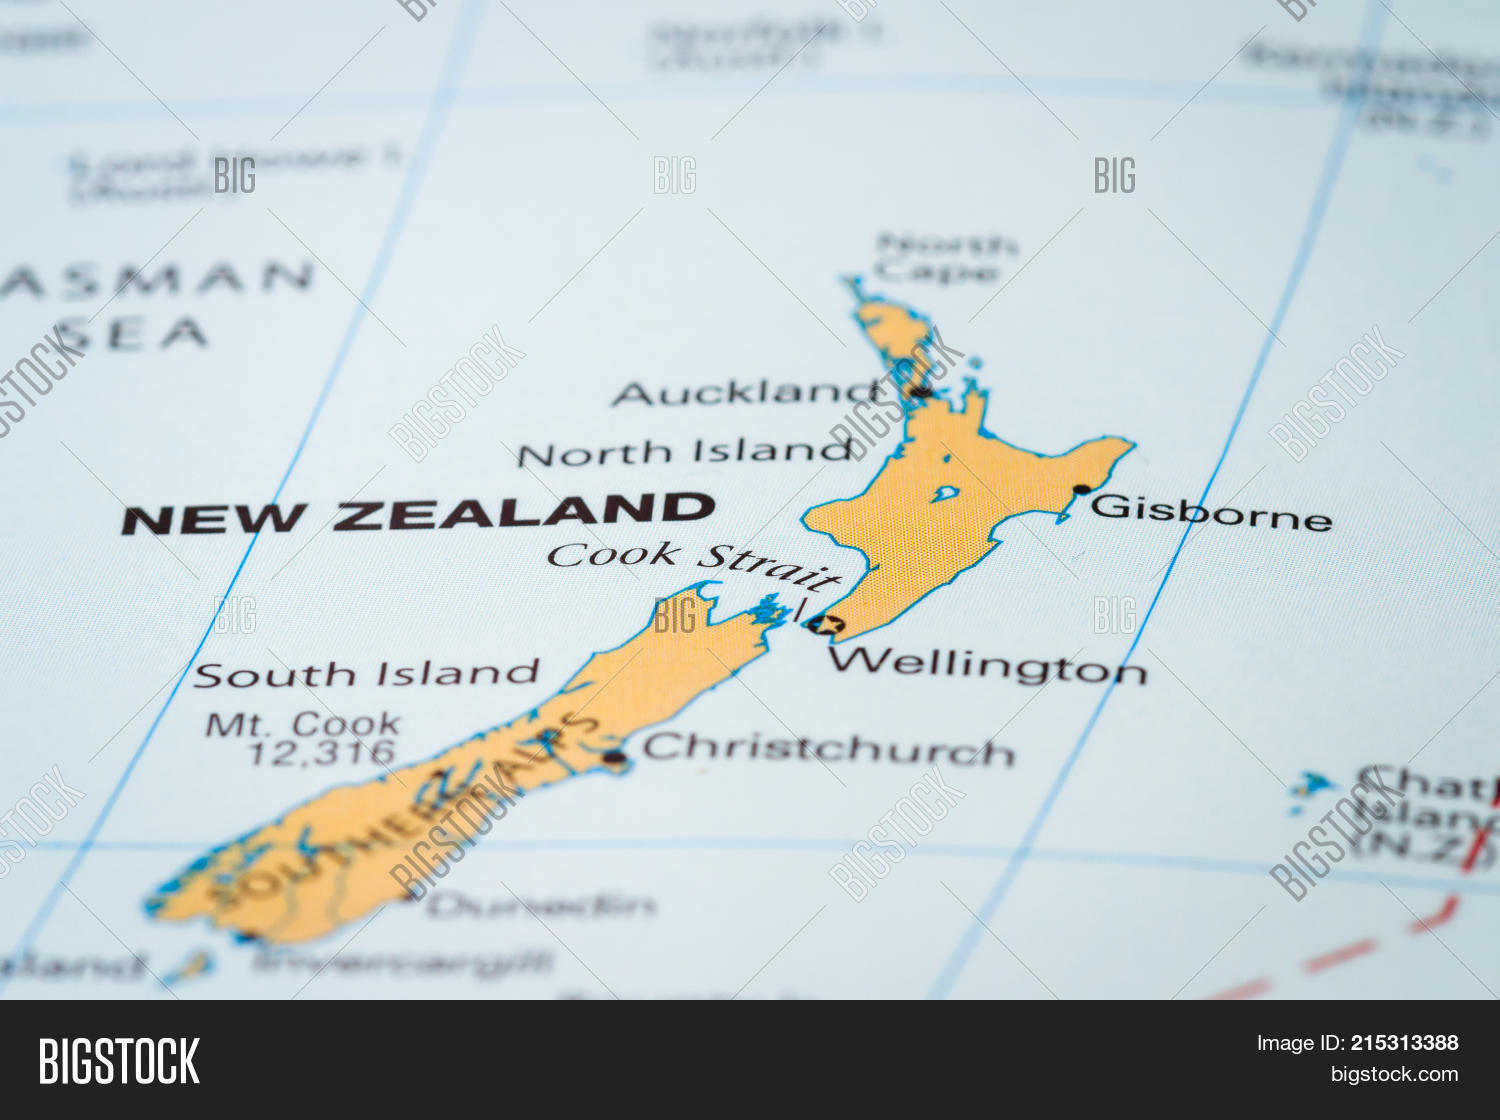 New Zealand On The Map.New Zealand On Map Image Photo Free Trial Bigstock